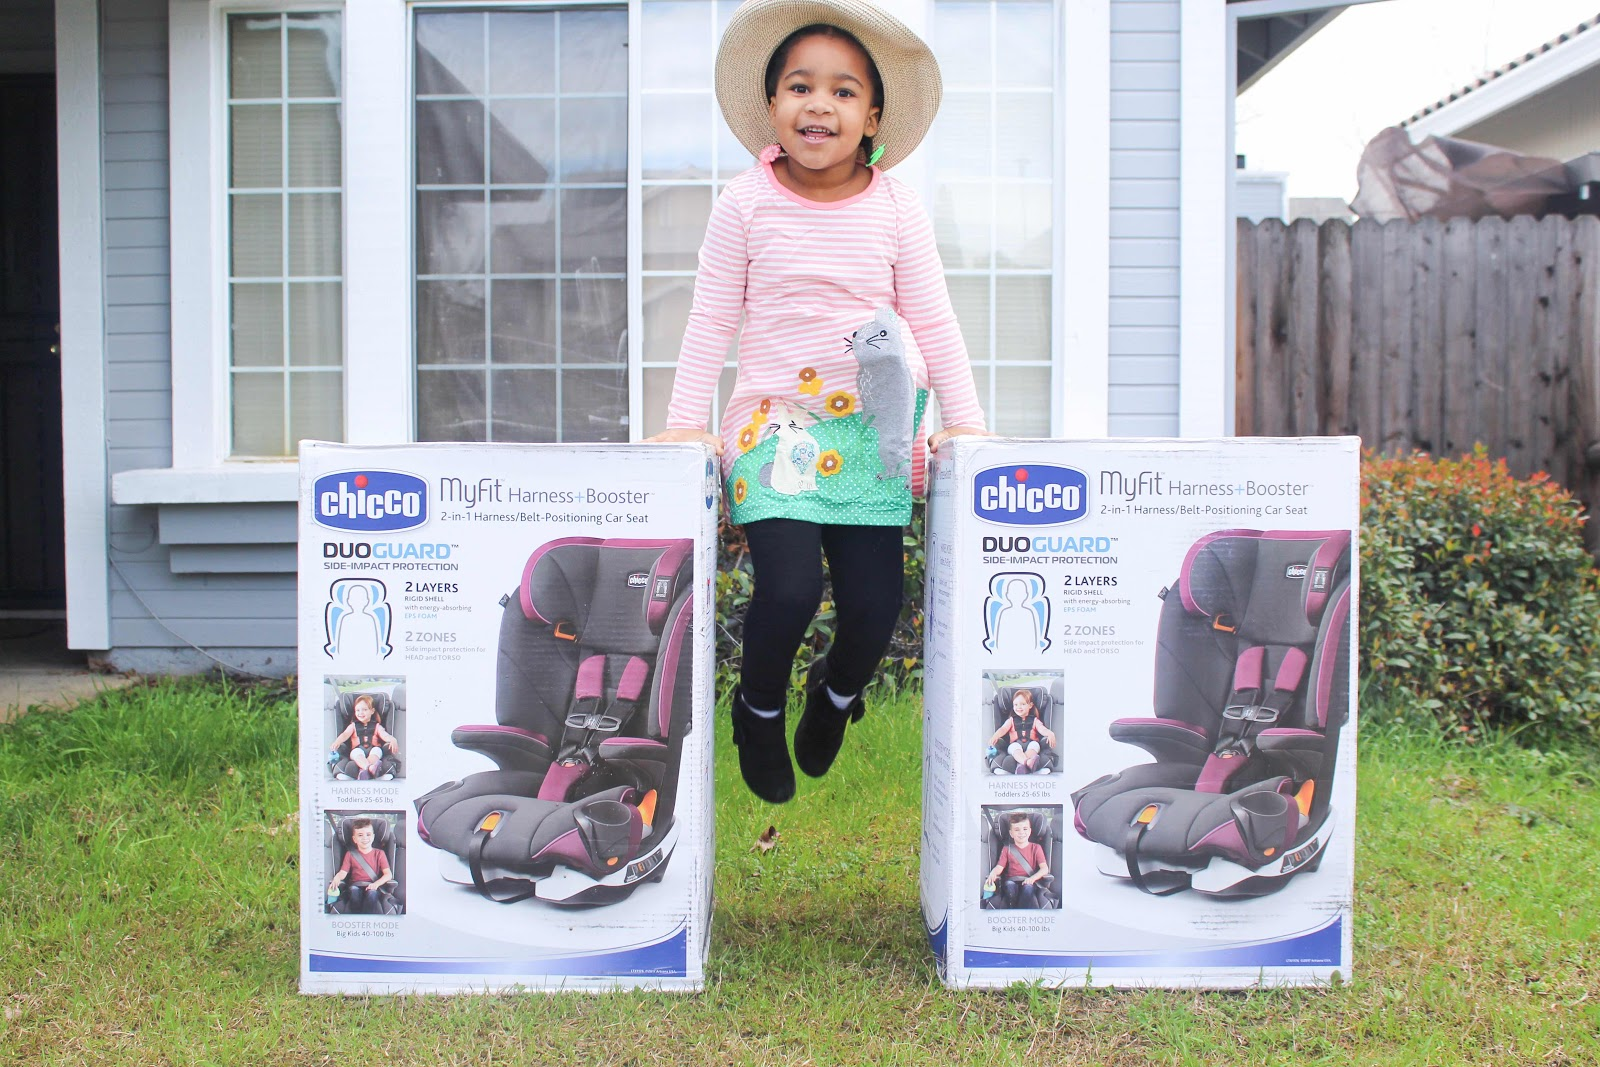 e532461ce18b0 Chicco Myfit Harness + Booster Carseat review (part 1) - Porsha Carr ...